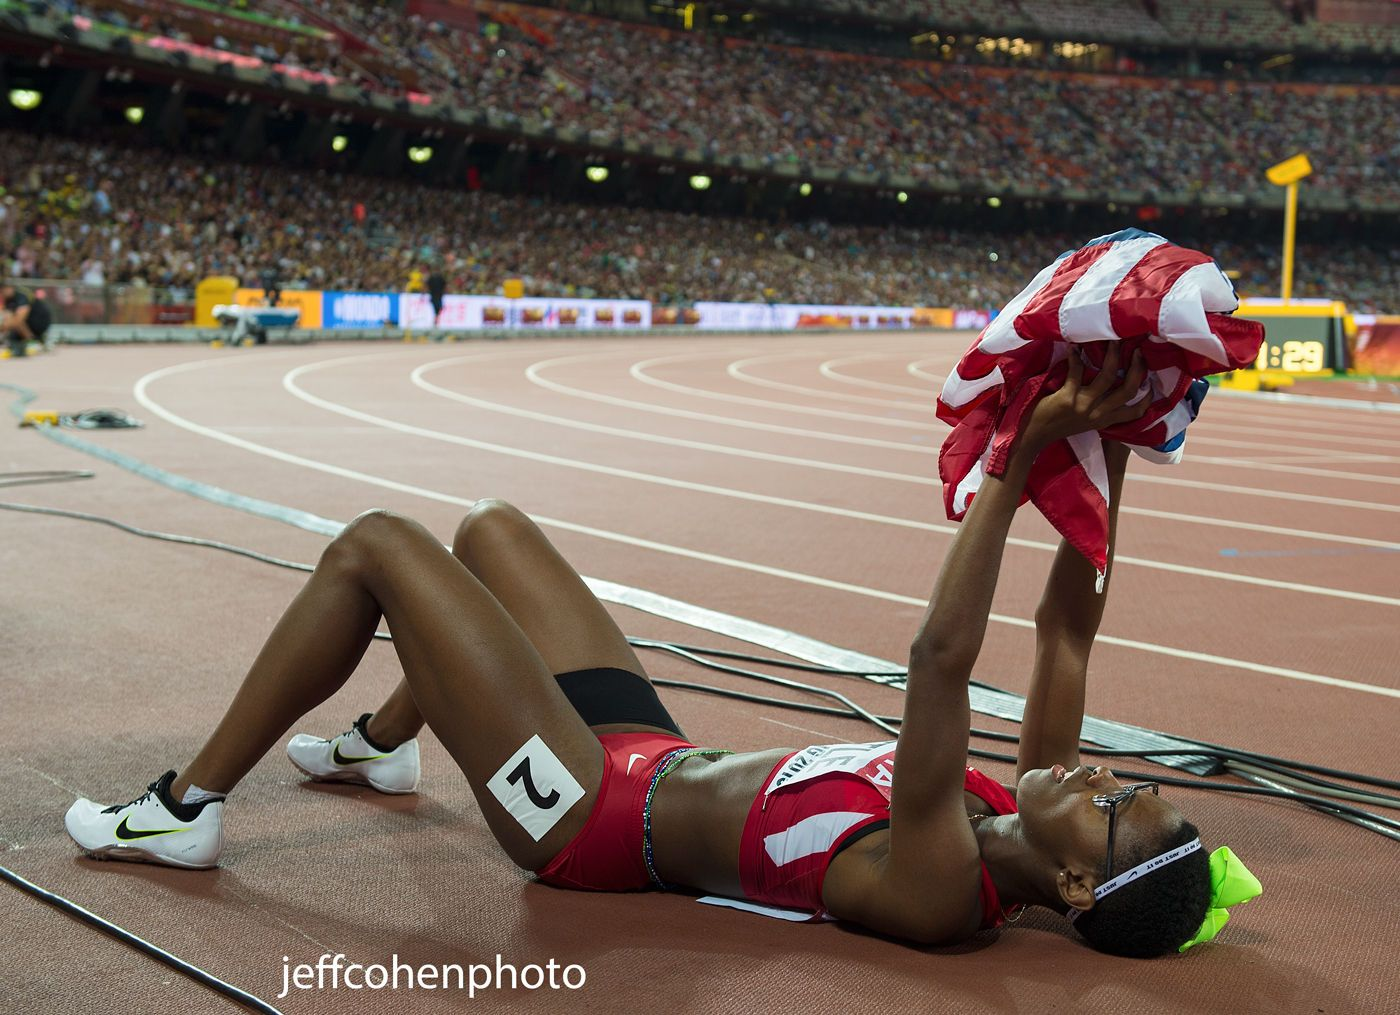 1beijing2015_night__5_little_400mhw_flag_jeff_cohen_photo_21563_web.jpg